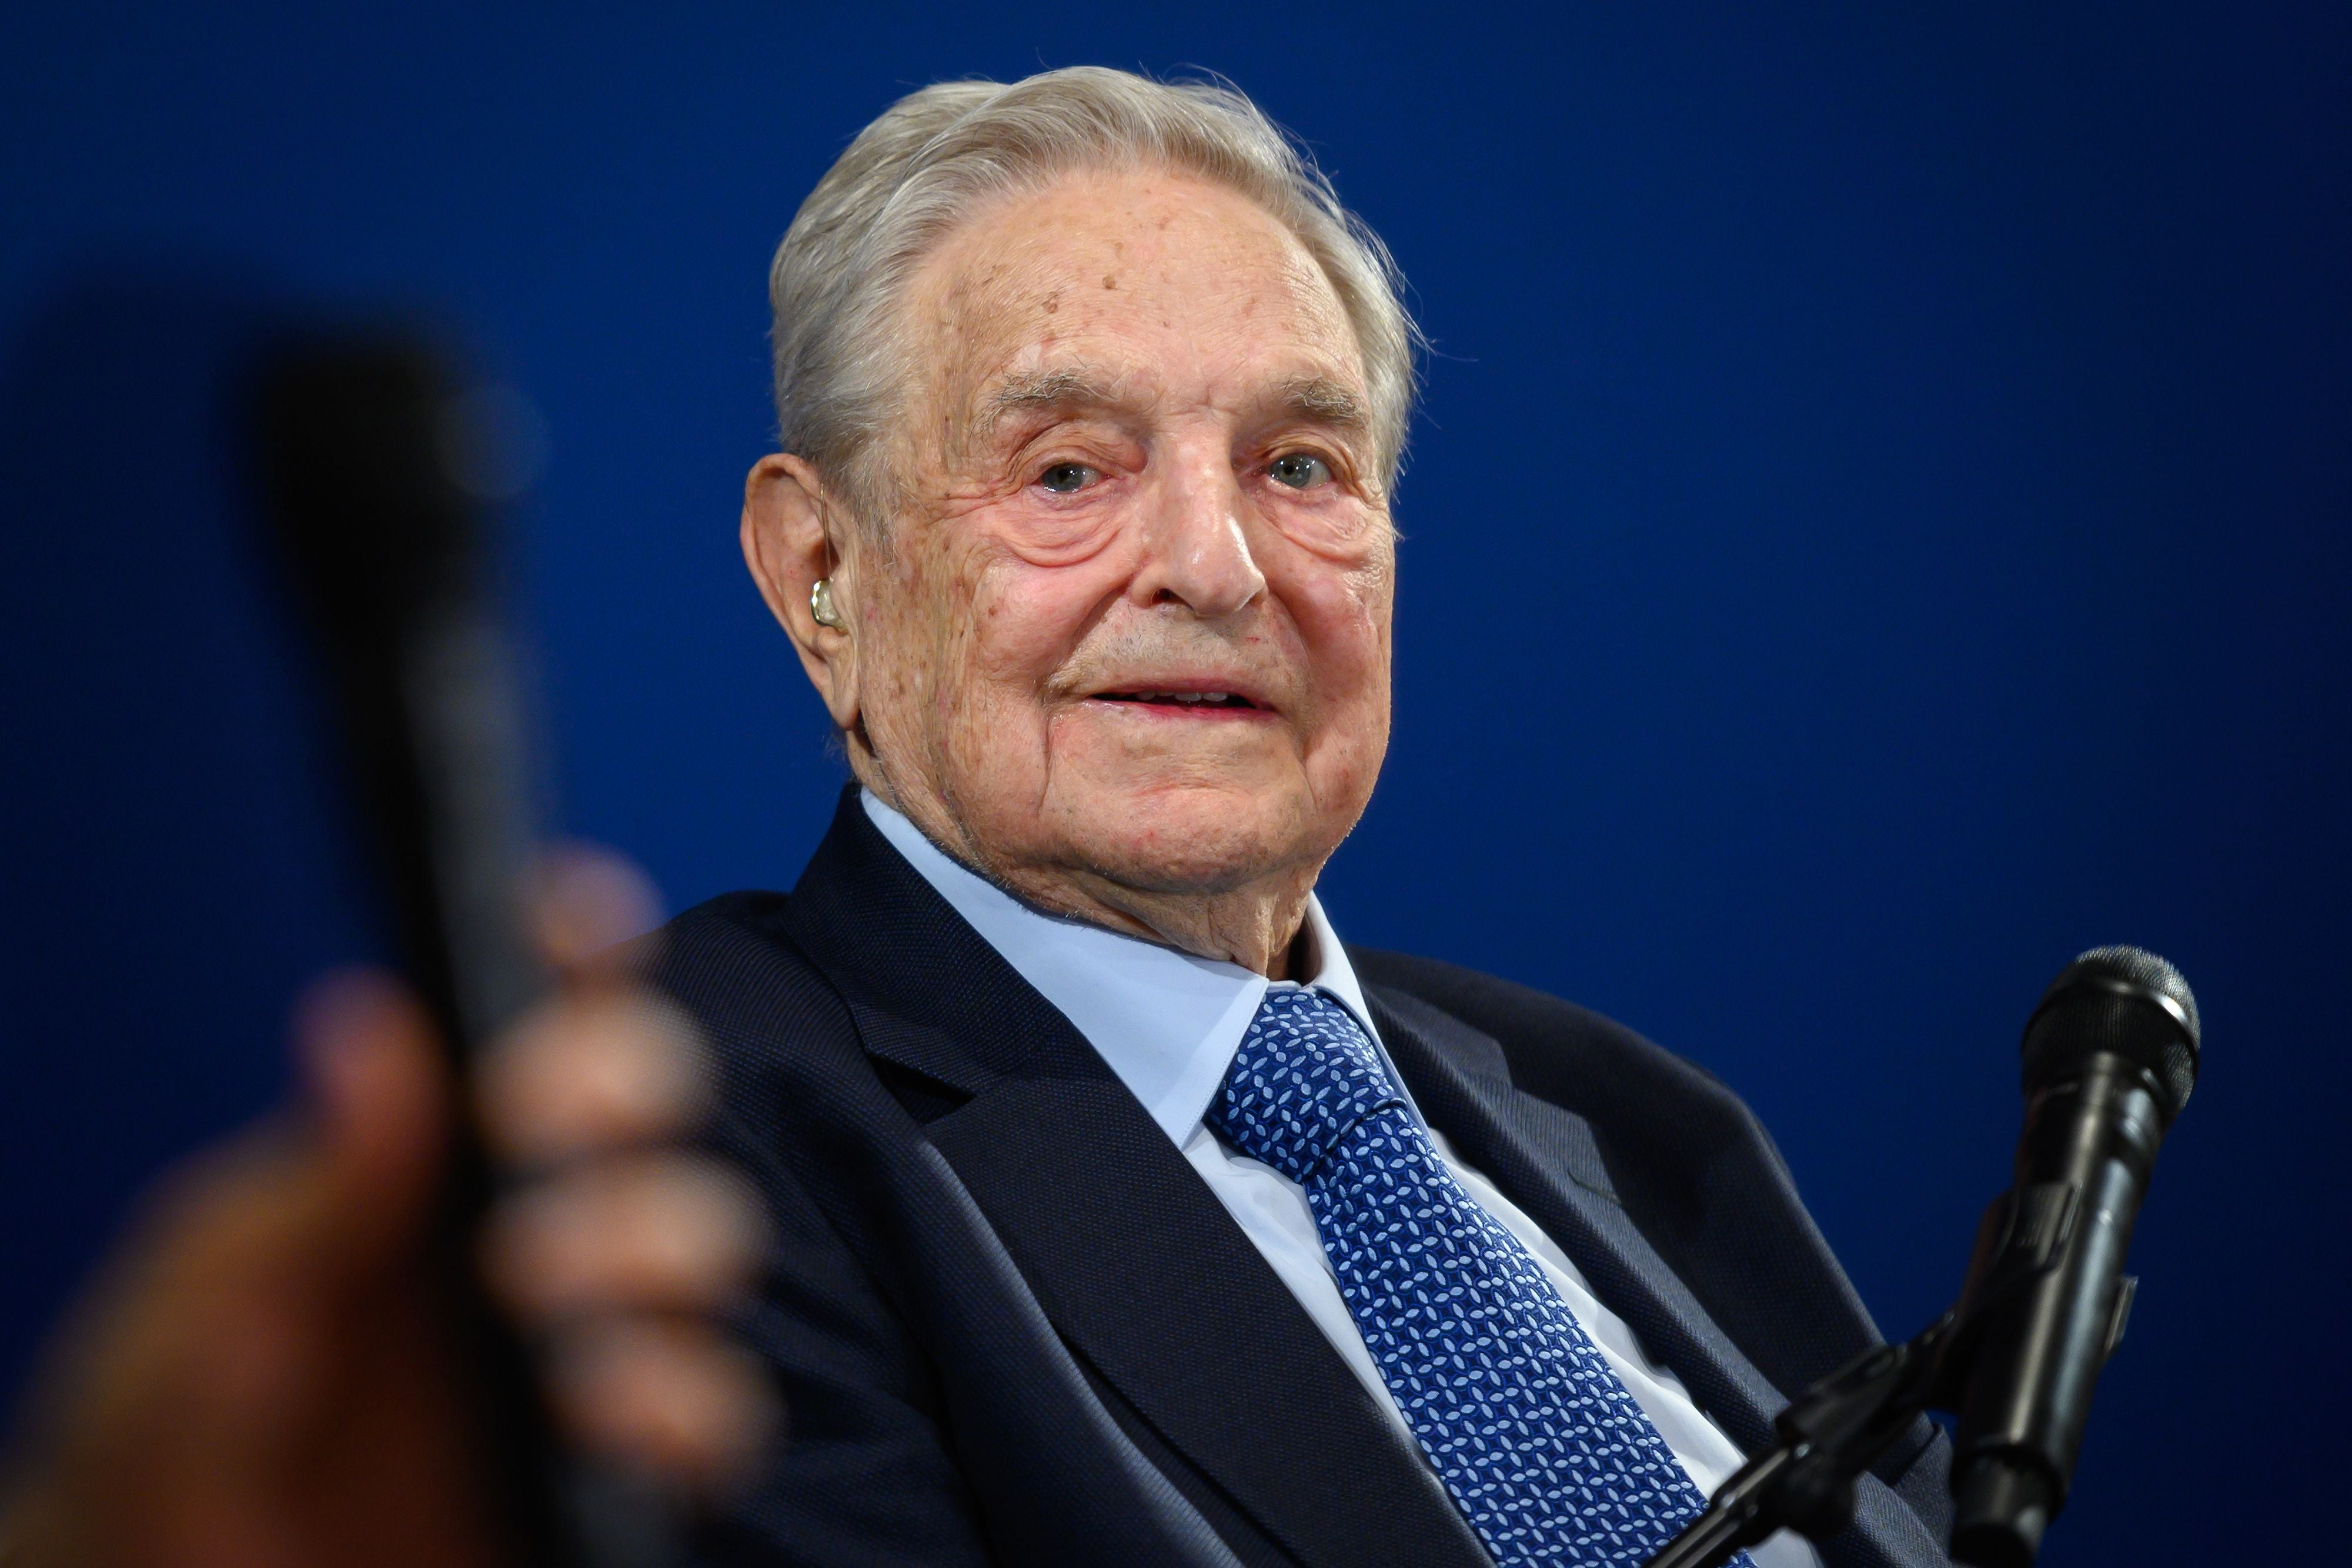 Fake conspiracy theory claiming George Soros arrested for election interference spread by far-right